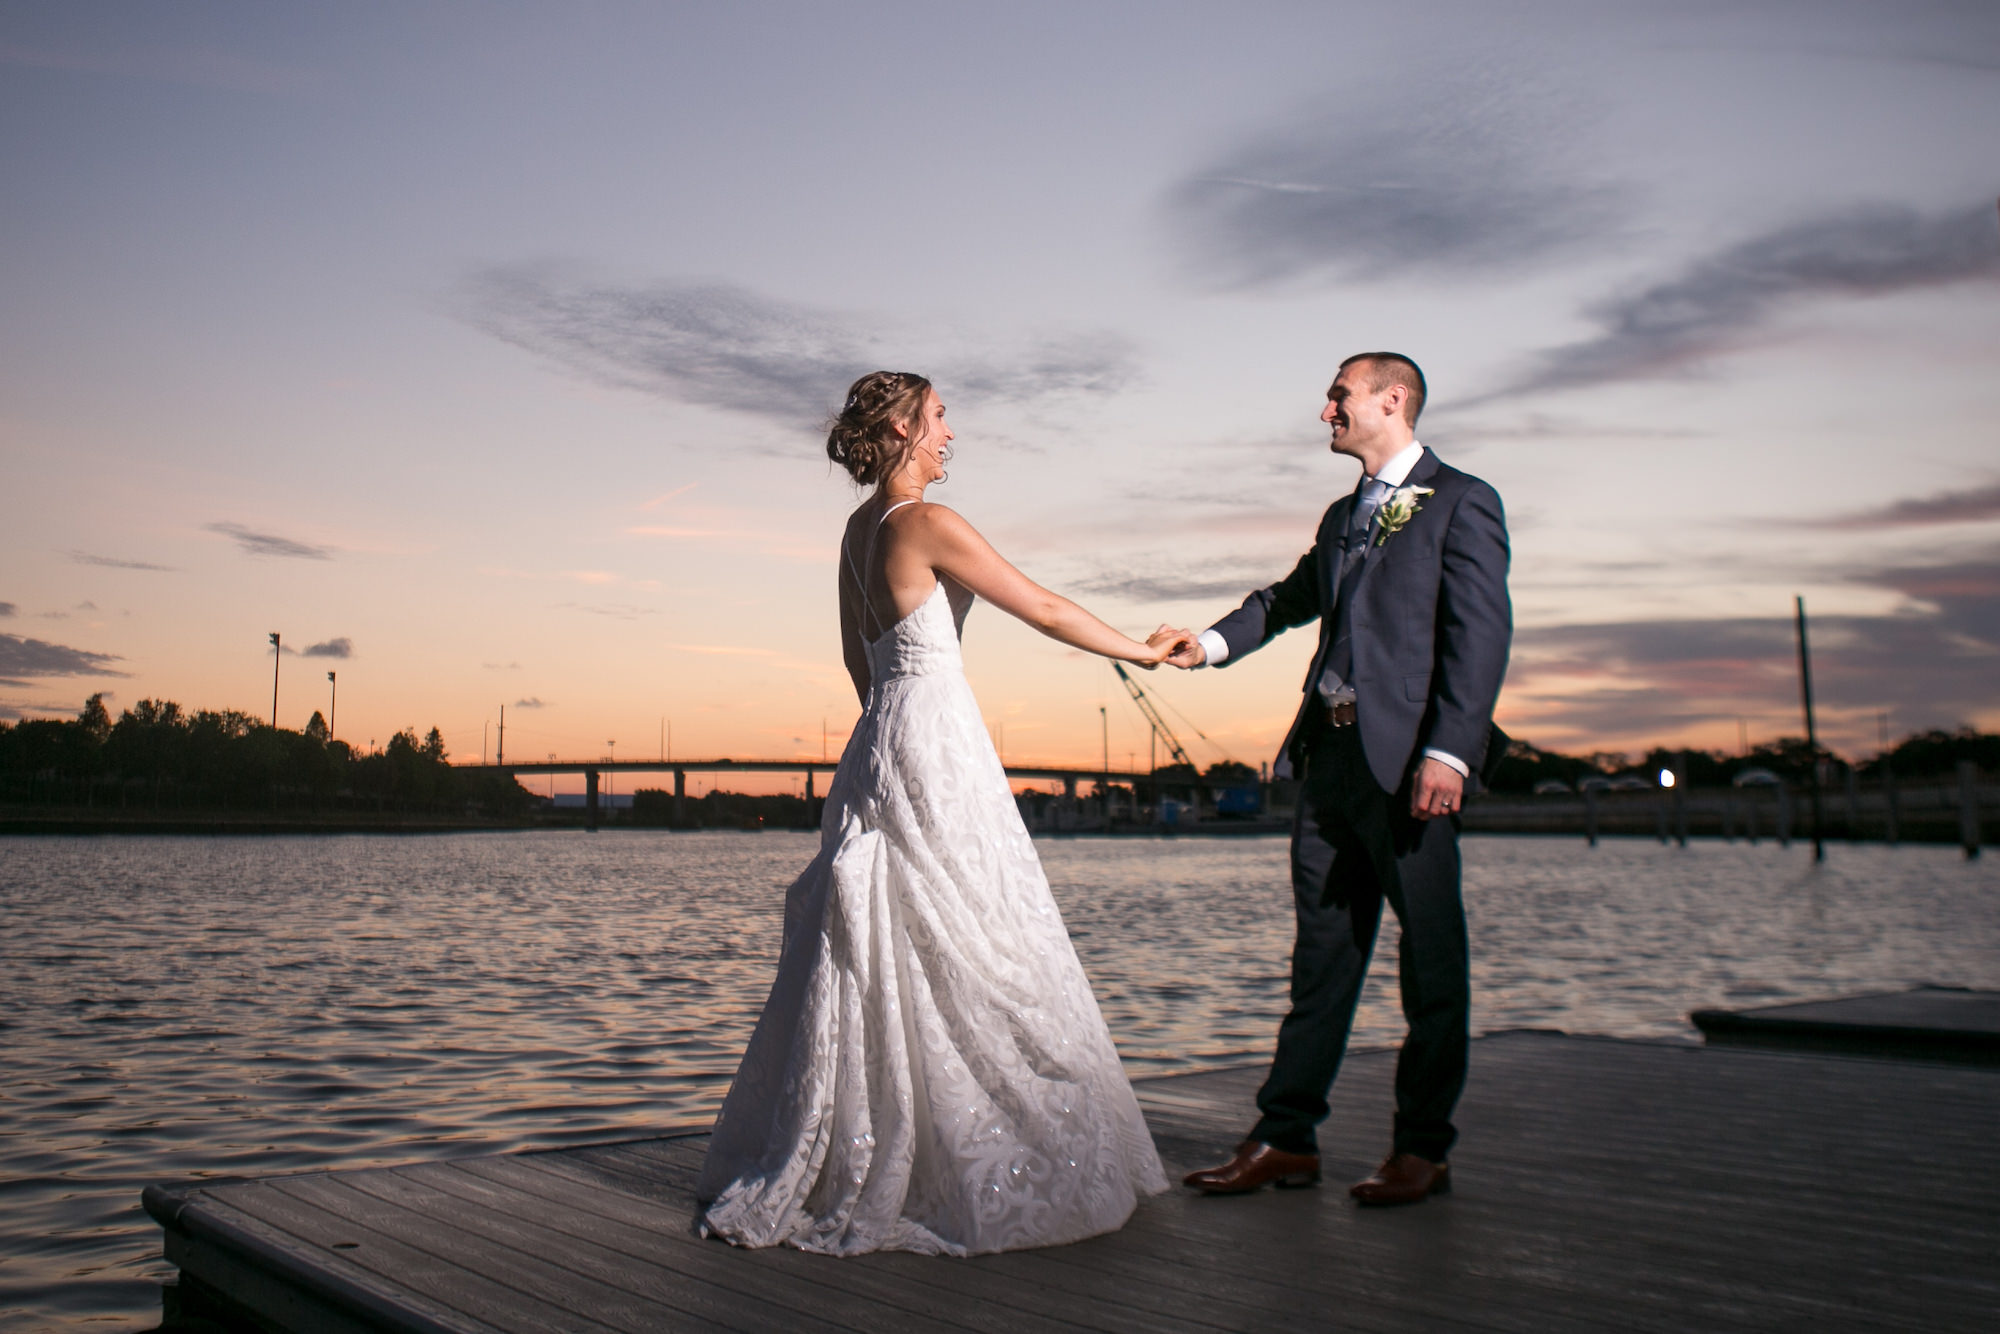 Sunset Bride and Groom Waterfront Wedding Portrait   Tampa Bay Wedding Photographer Carrie Wildes Photography